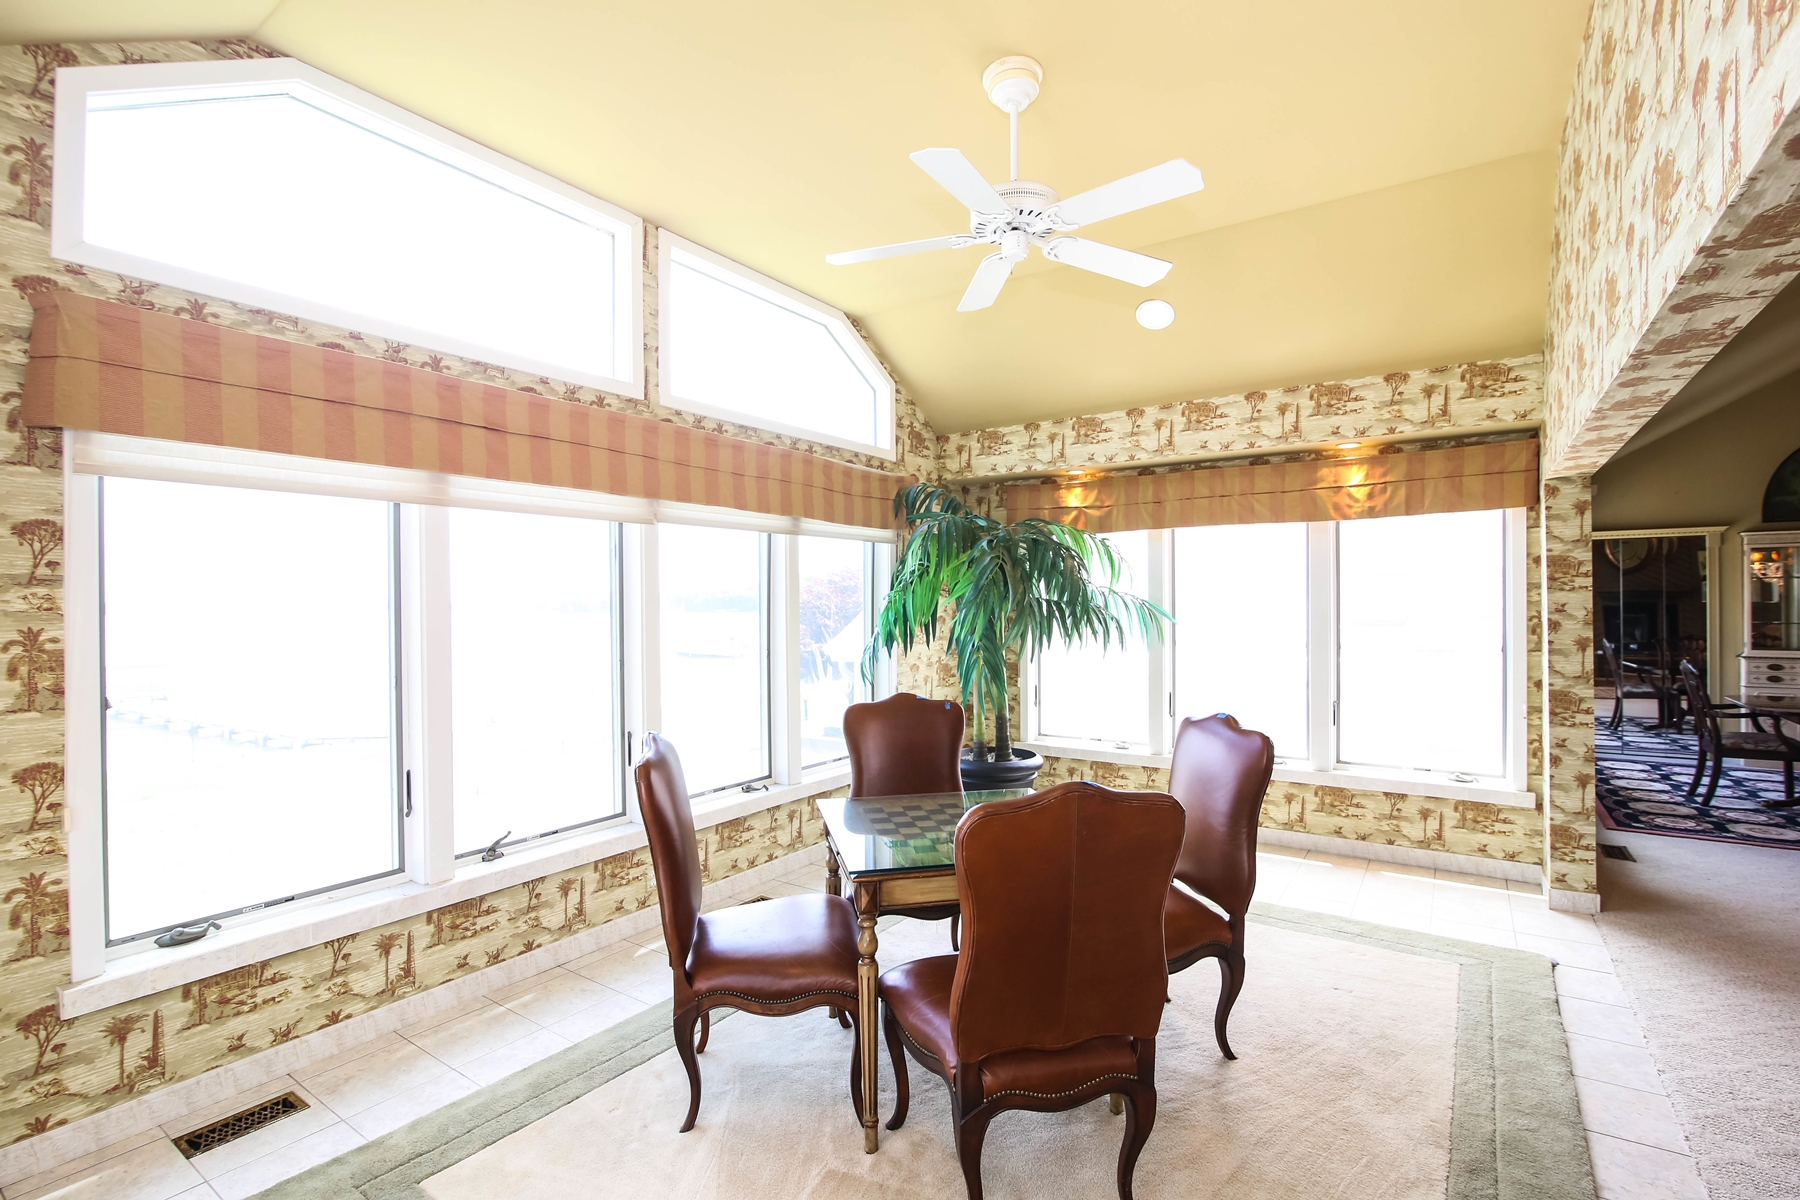 Additional photo for property listing at Bennetts Point 3003 Bennett Point Rd Queenstown, 메릴랜드 21658 미국